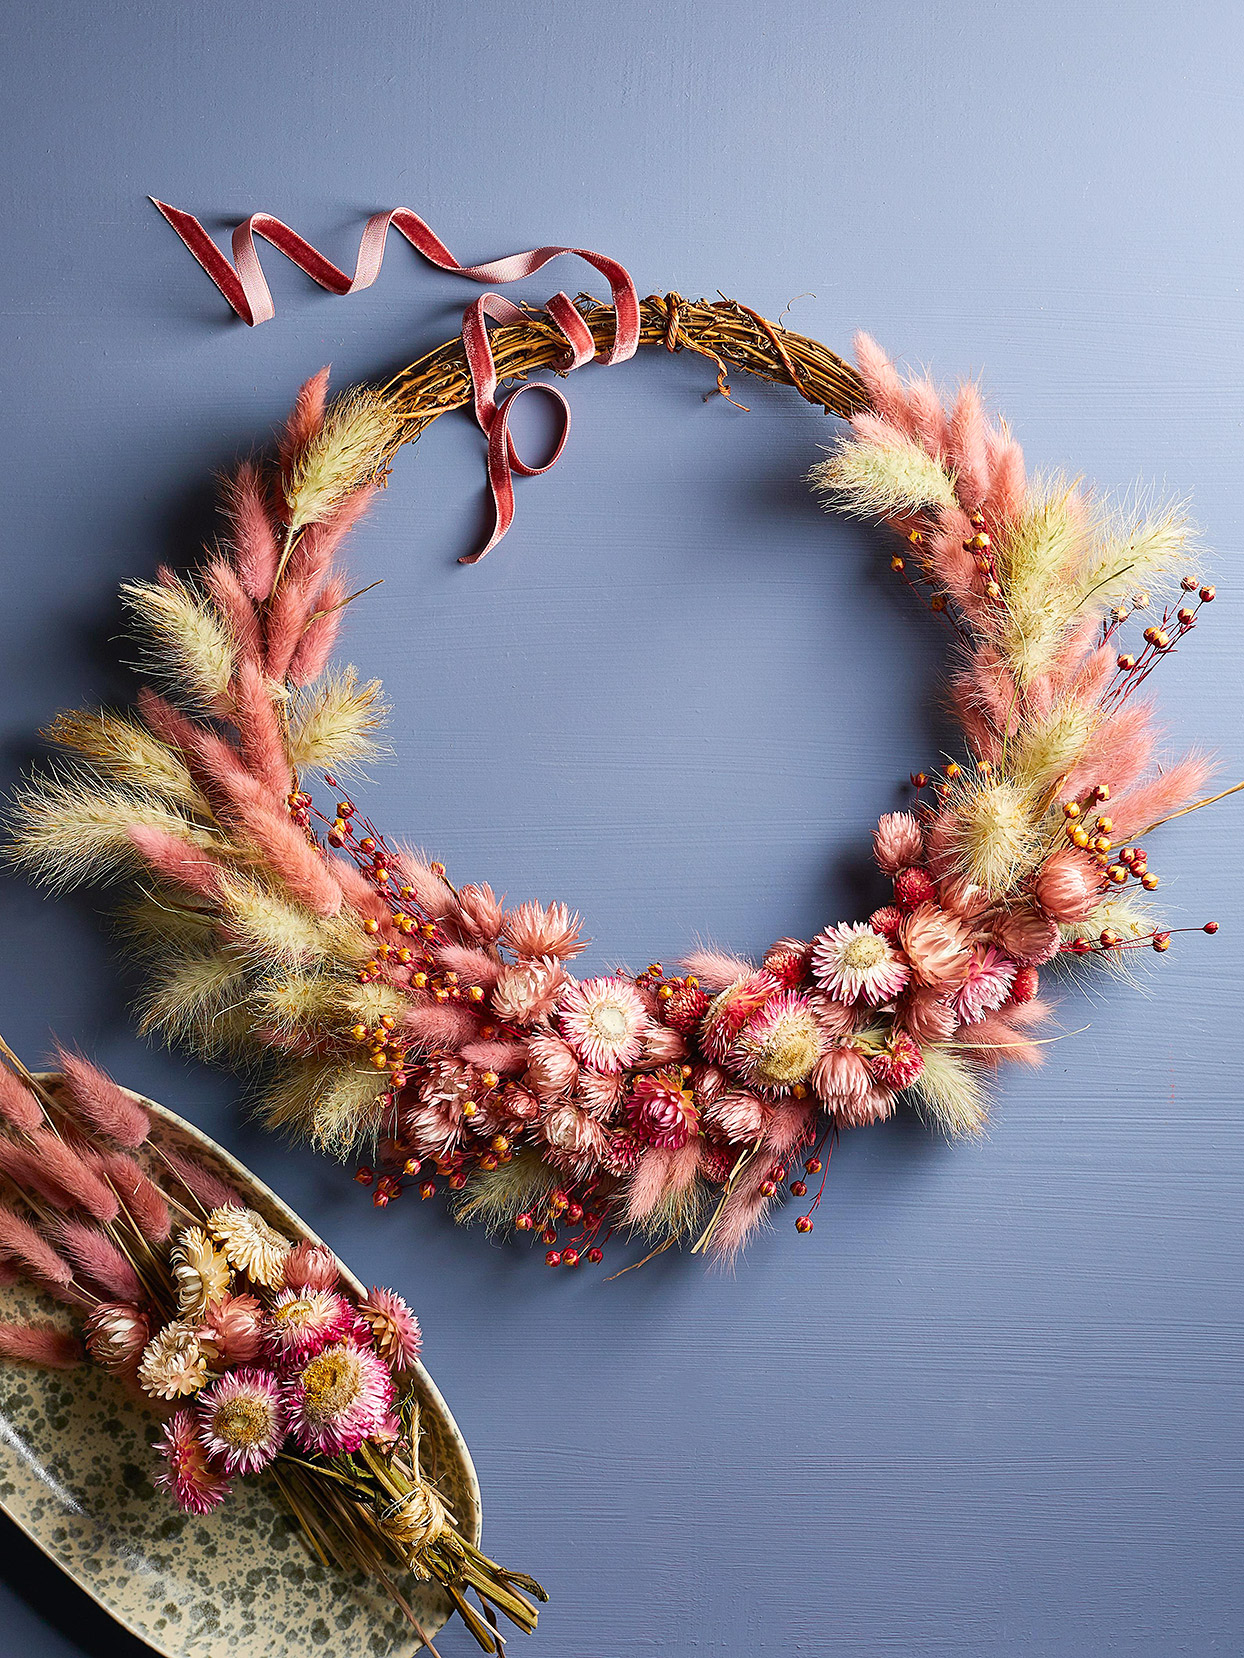 pink dyed bunny tails grass berries flowers wreath